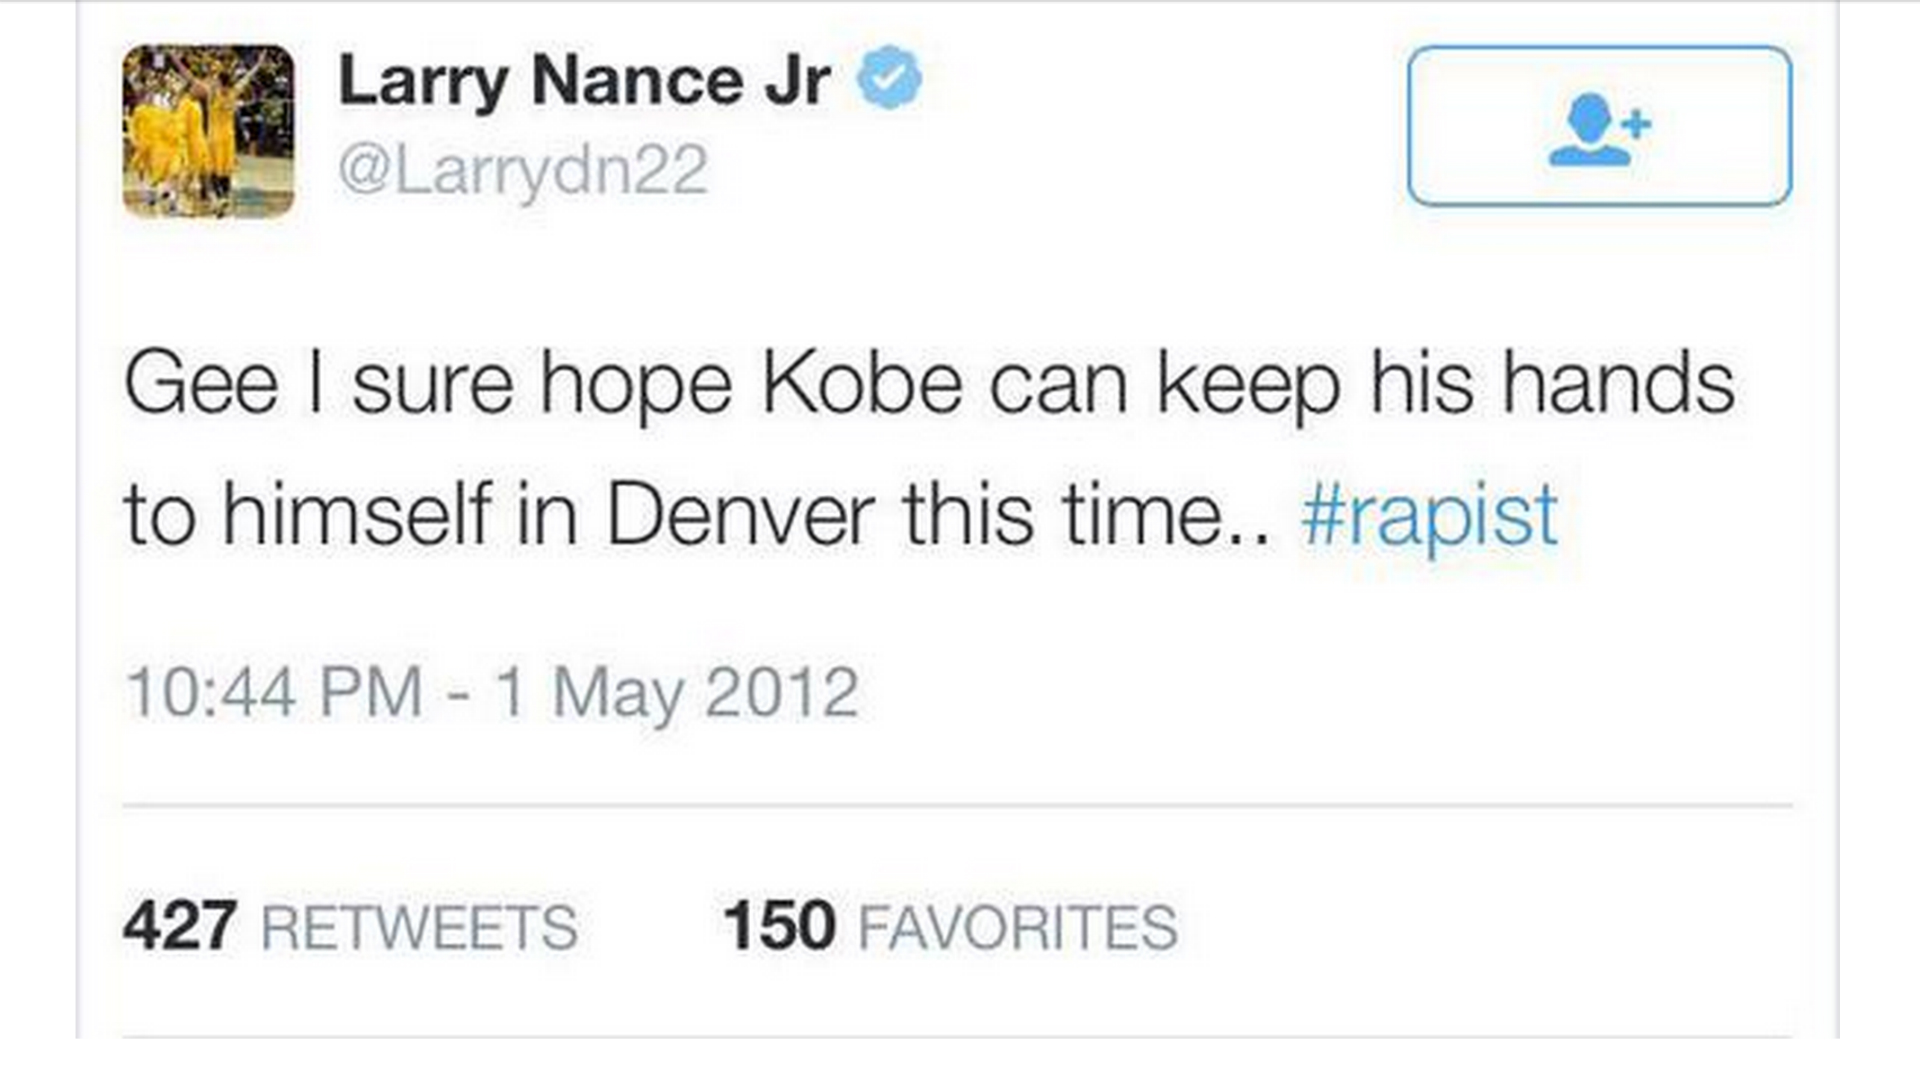 Larry Nance was 'terrified' what Kobe might say about 'rapist' tweet